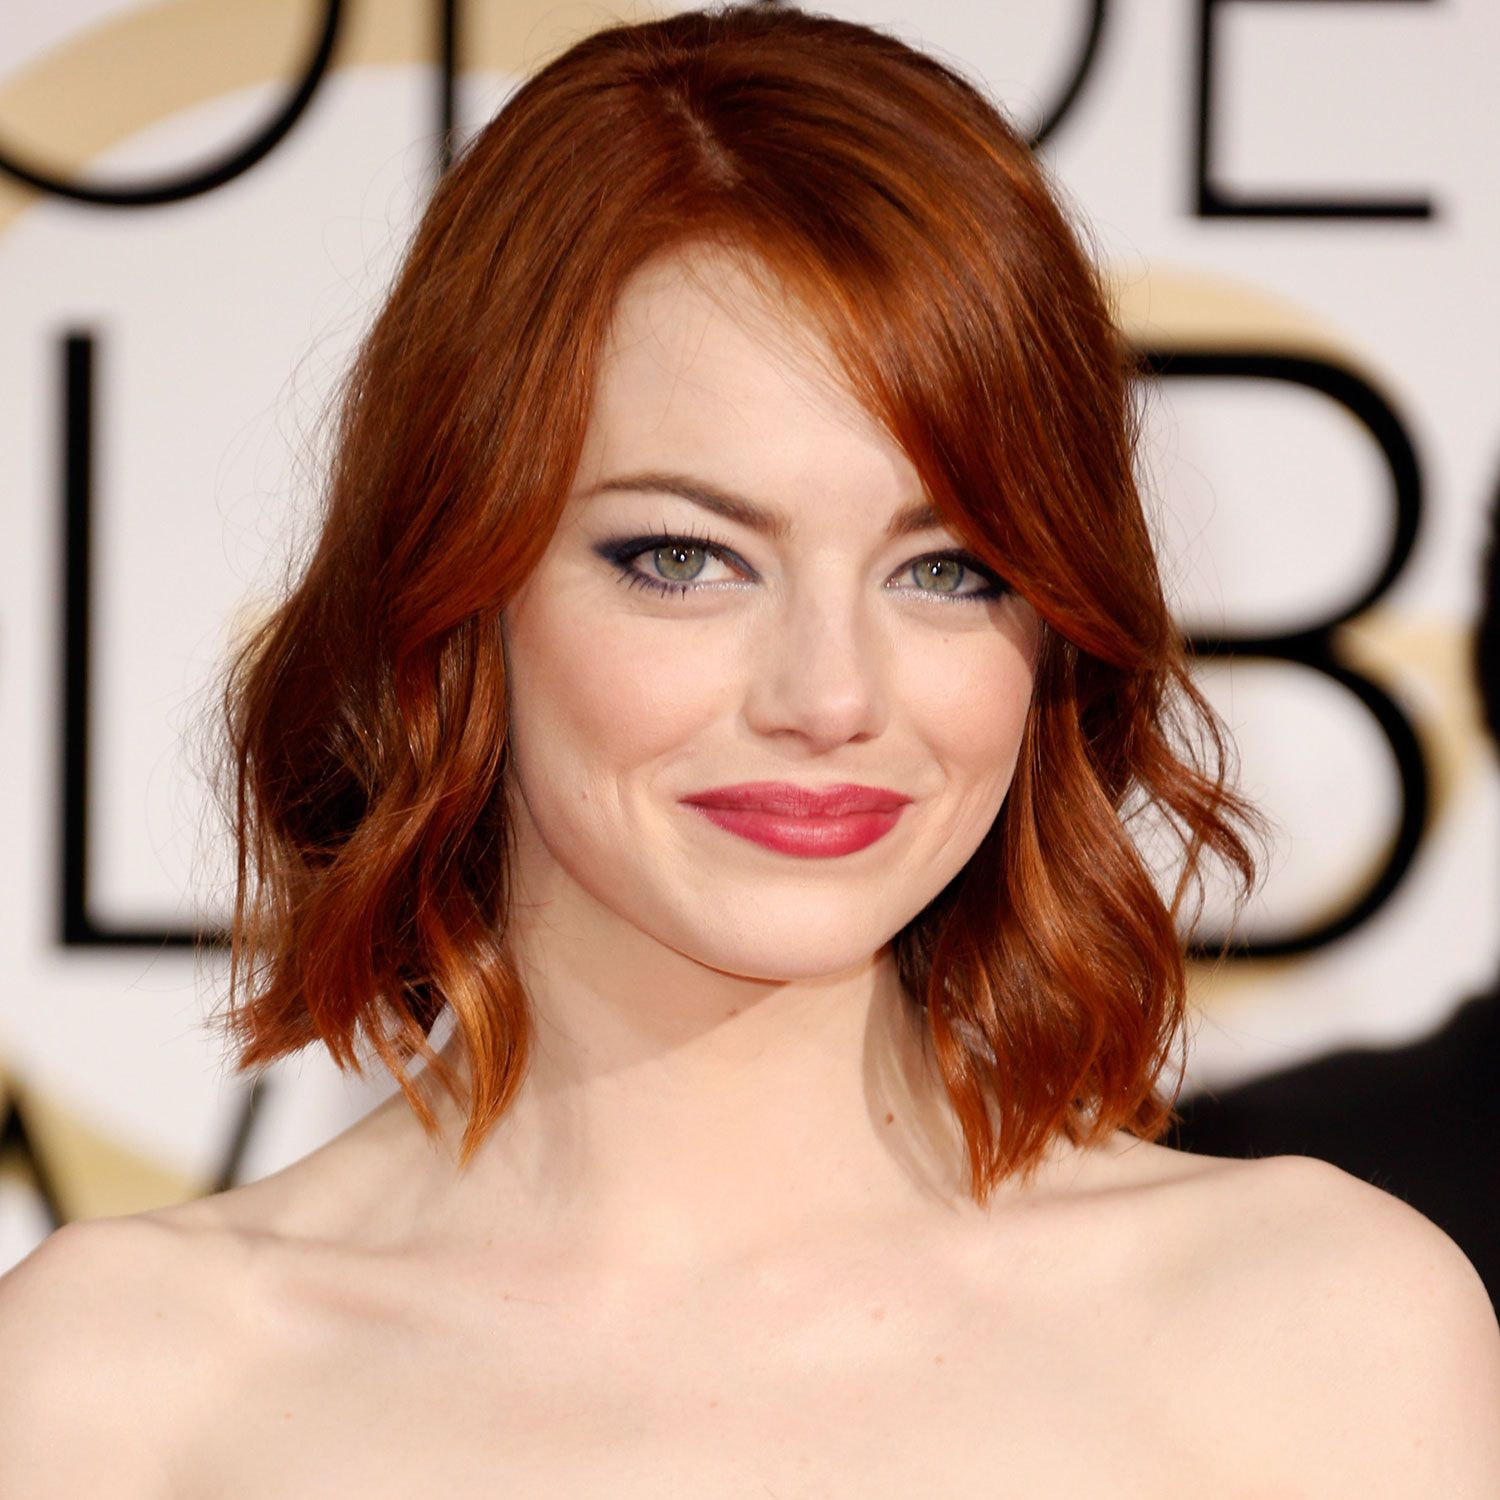 emma stone catemma stone audition, emma stone la la land, emma stone audition перевод, emma stone cat, emma stone ryan gosling, emma stone instagram, emma stone and andrew garfield, emma stone audition lyrics, emma stone 2016, emma stone gif, emma stone vk, emma stone 2017, emma stone – someone in the crowd, emma stone boyfriend, emma stone movies, emma stone twitter, emma stone interview, emma stone films, emma stone wiki, emma stone tattoo